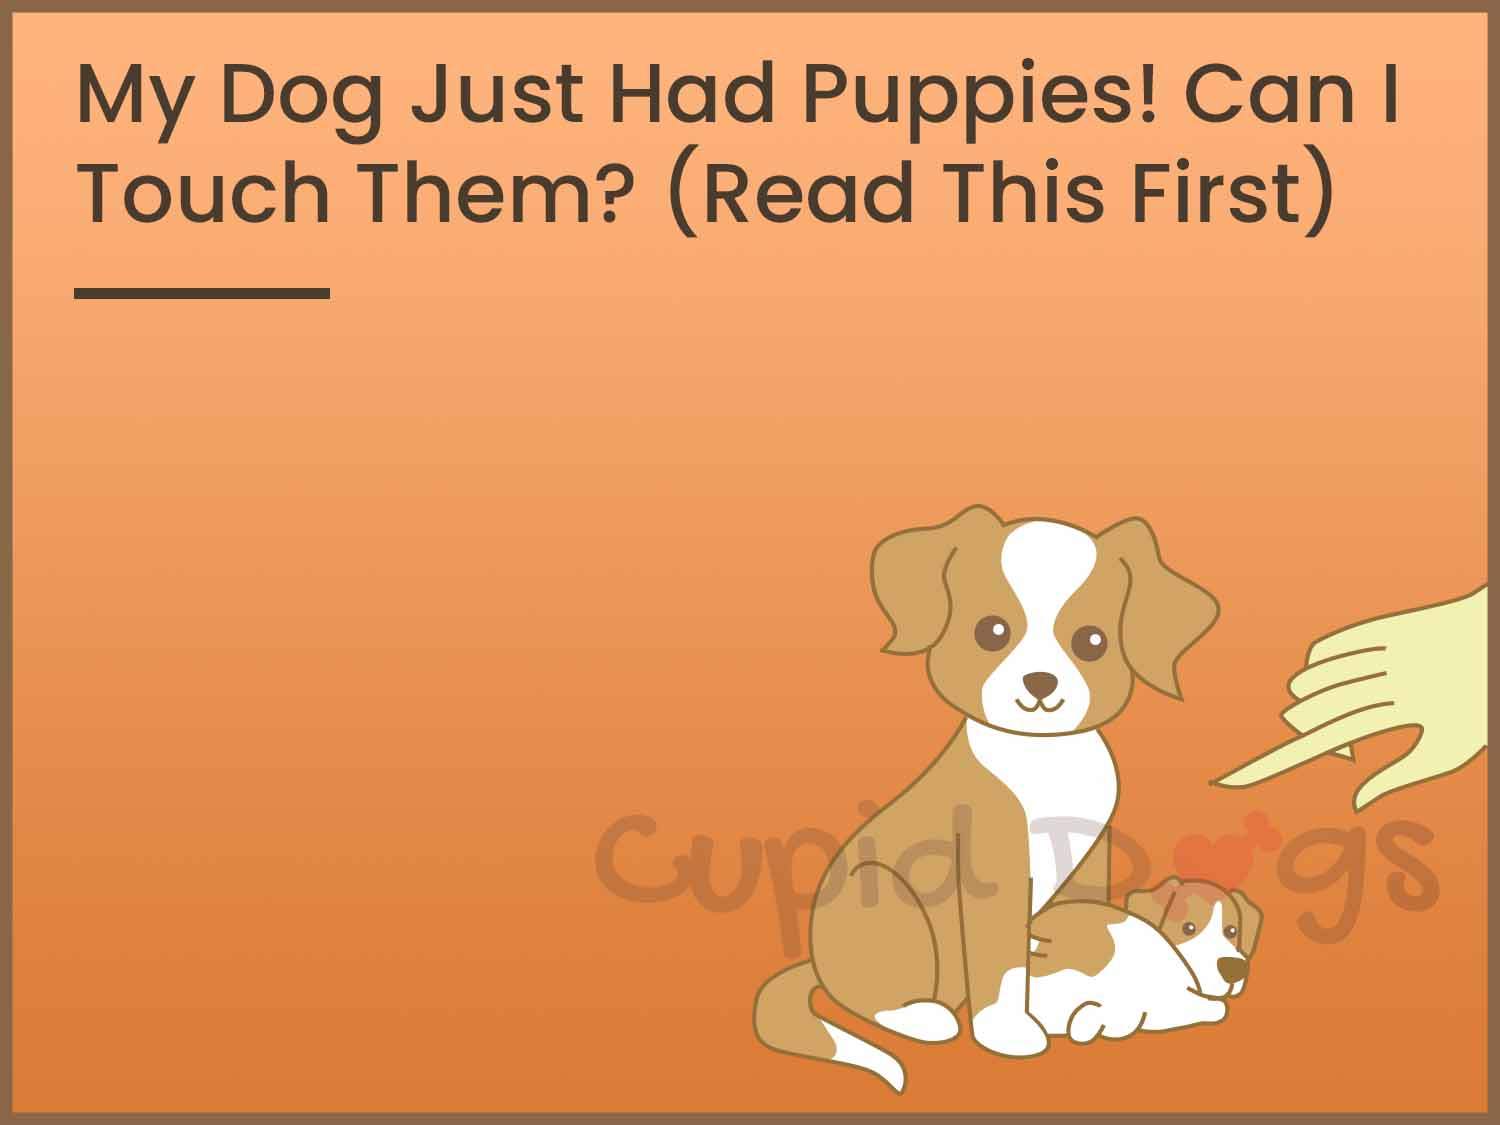 """My Dog Just Had Puppies! Can I Touch Them? (Read This First)"" is locked My Dog Just Had Puppies! Can I Touch Them?"